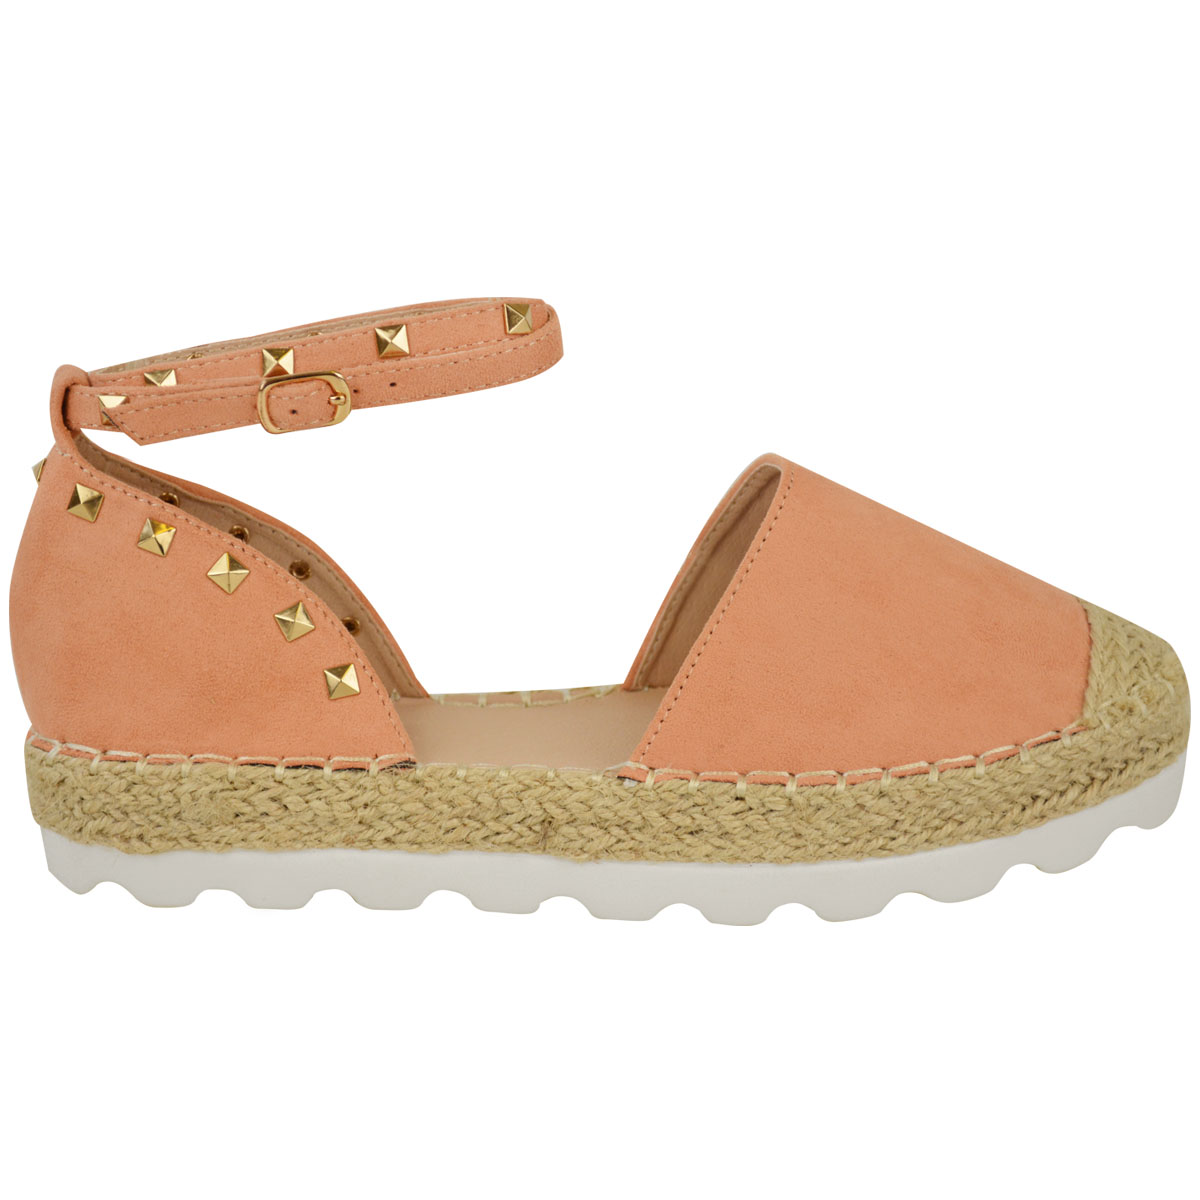 Womens-Ladies-Espadrilles-Flat-Pom-Pom-Sandals-Slip-On-Strappy-Comfy-Size-Shoes thumbnail 3